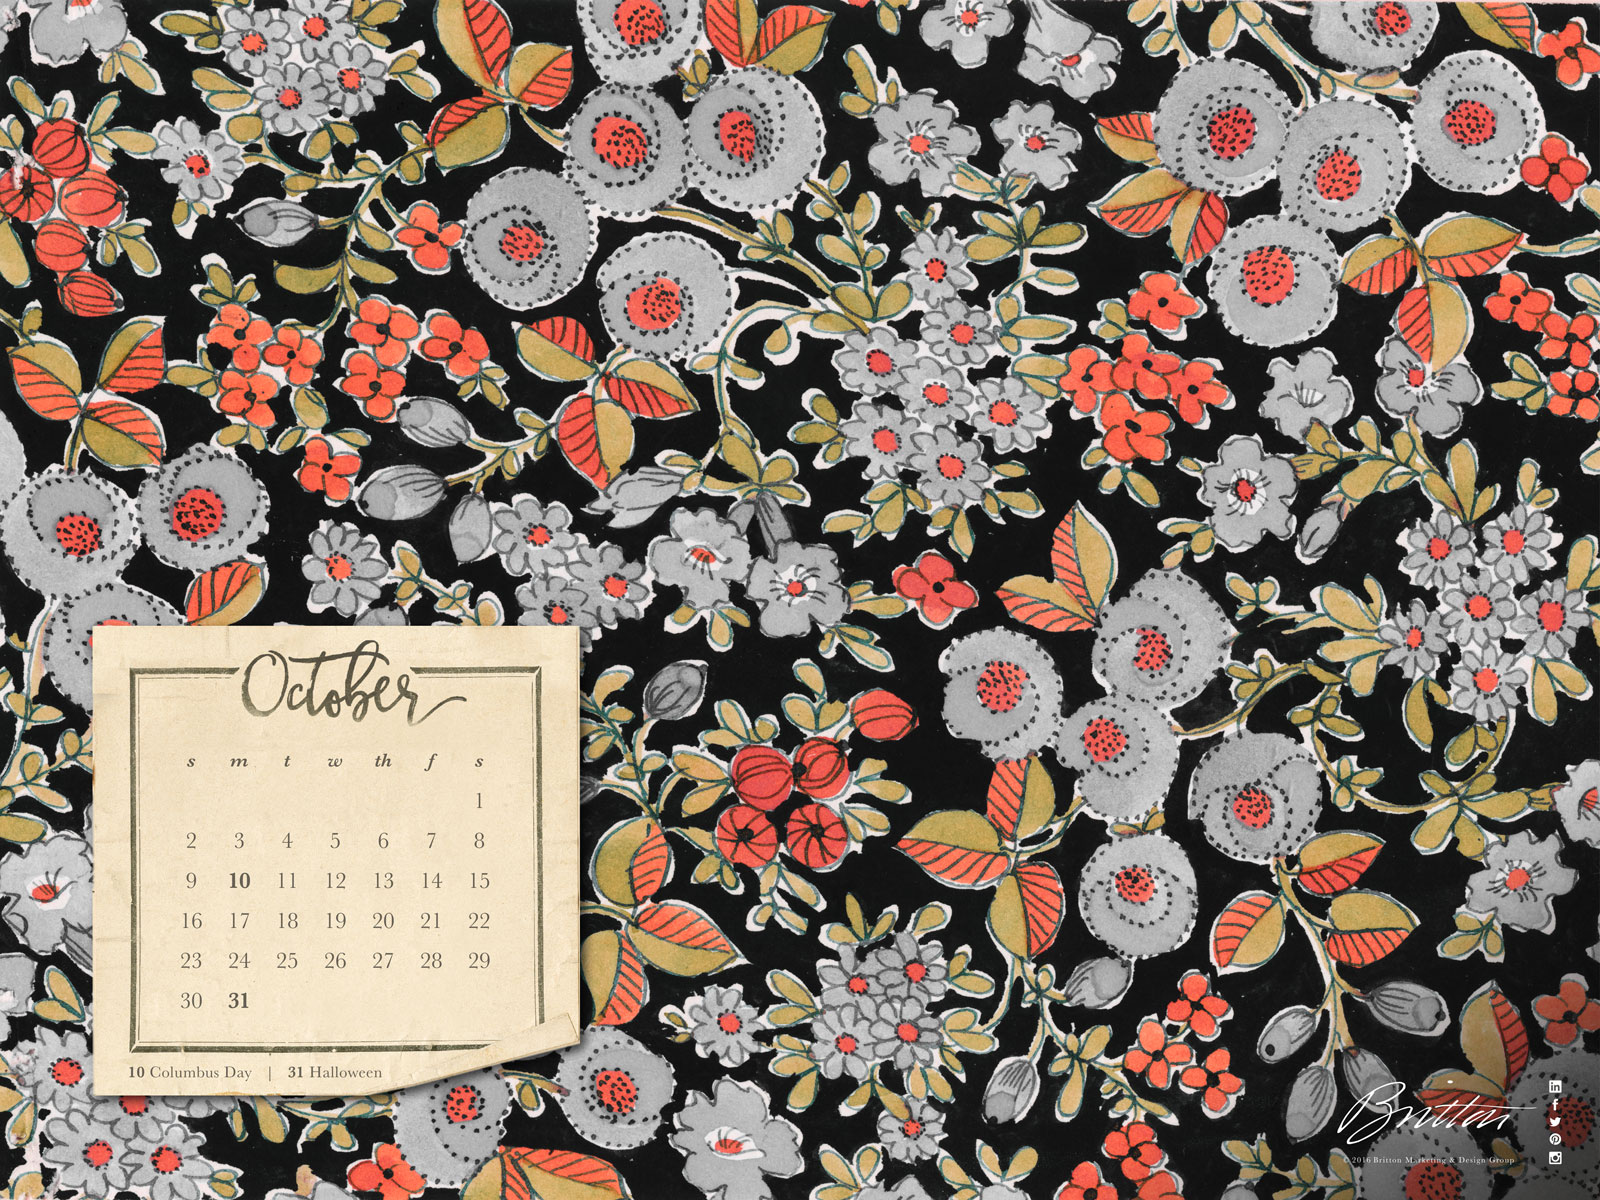 October floral desktop calendar - widescreen